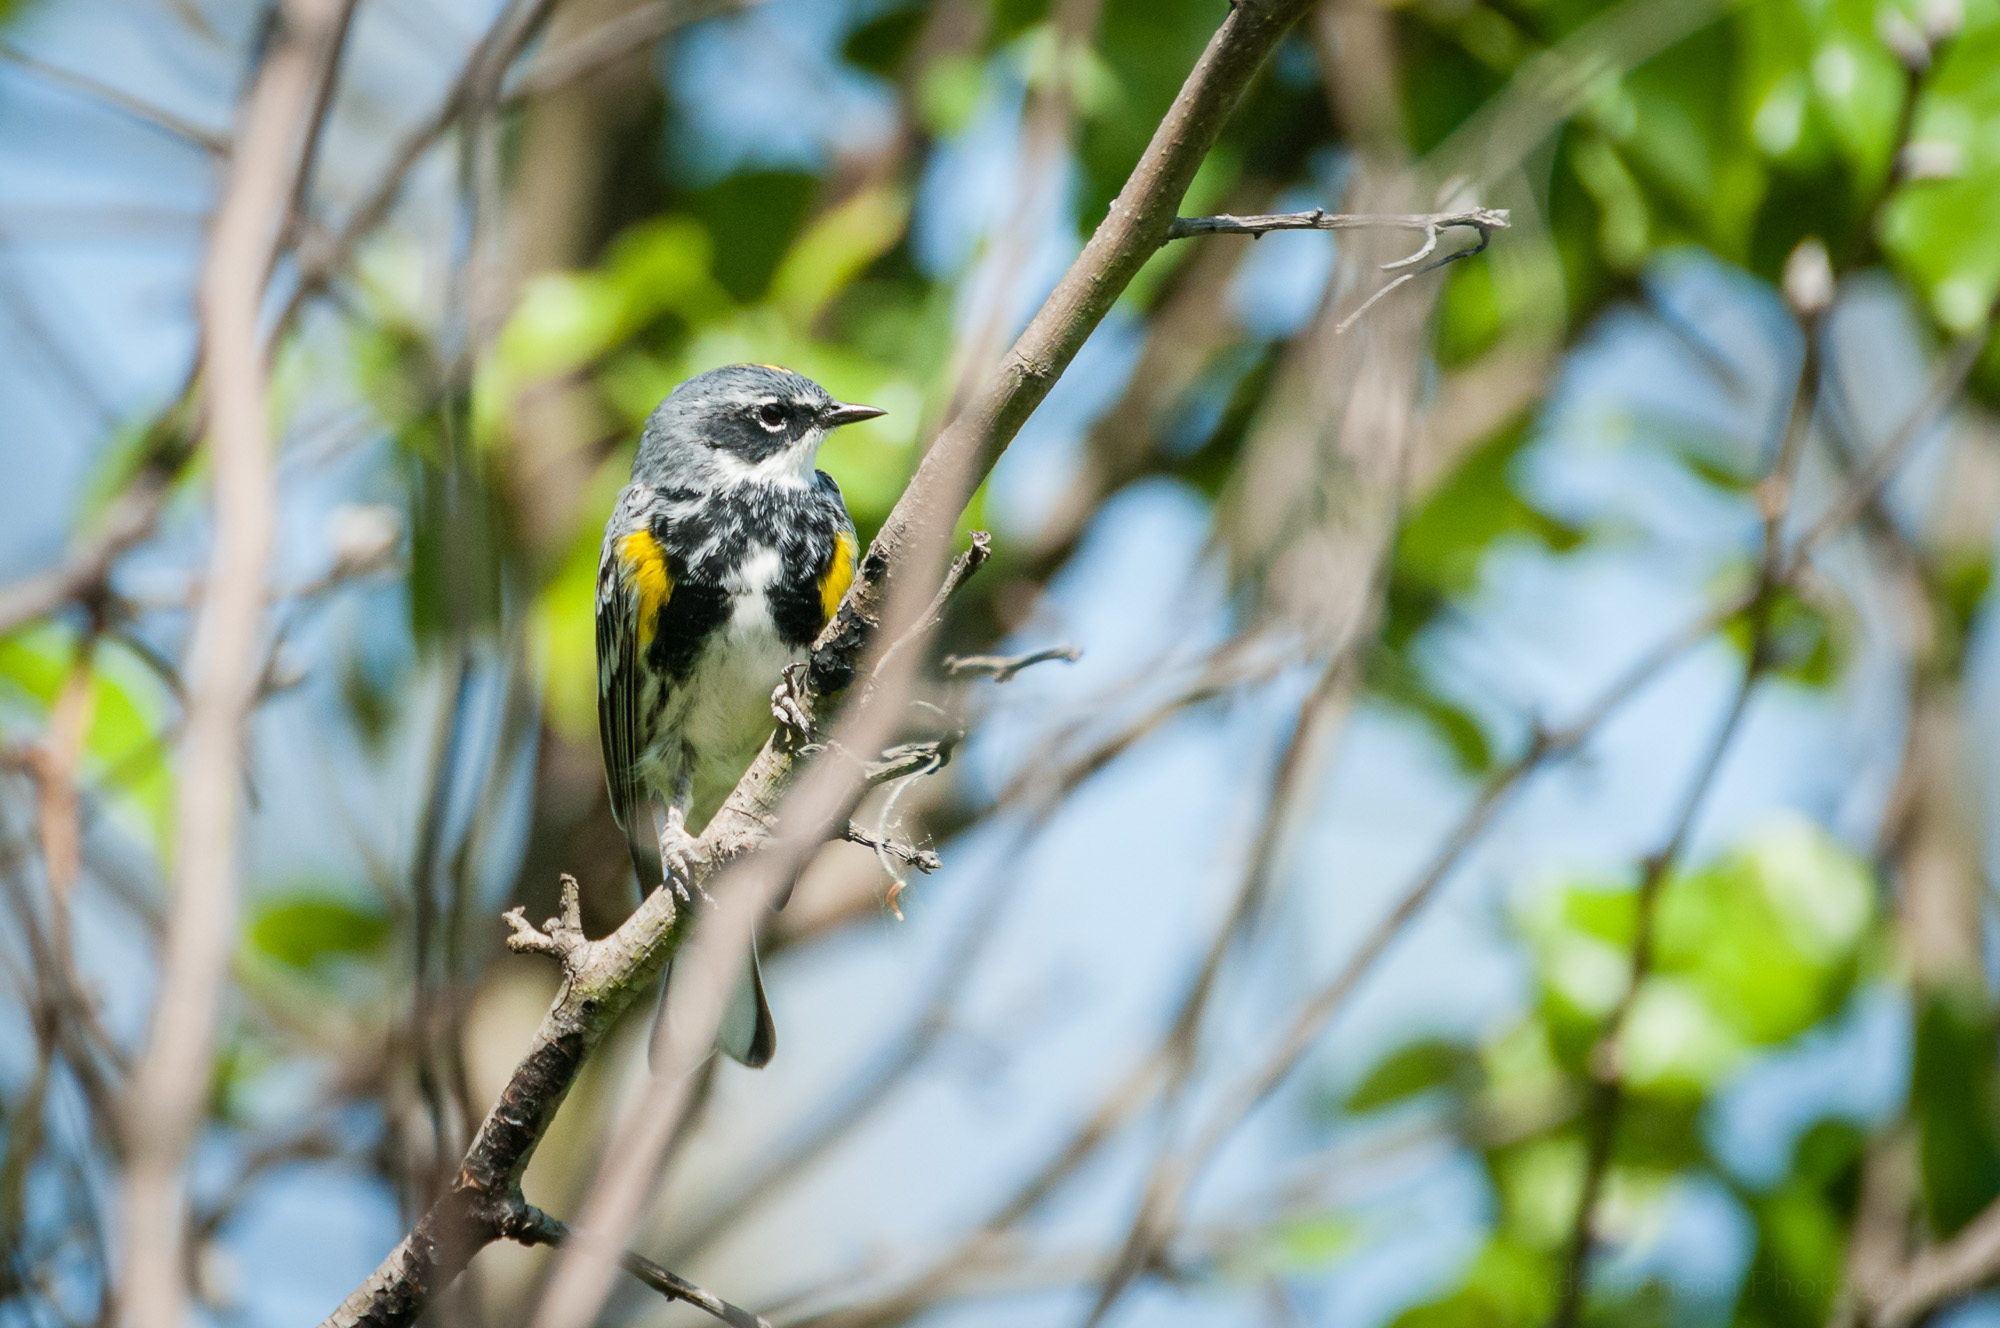 Yellow-rumped Warbler of the Myrtle variety. Notice the white throat. You can also see the 2 yellow patches on either side of its breast.